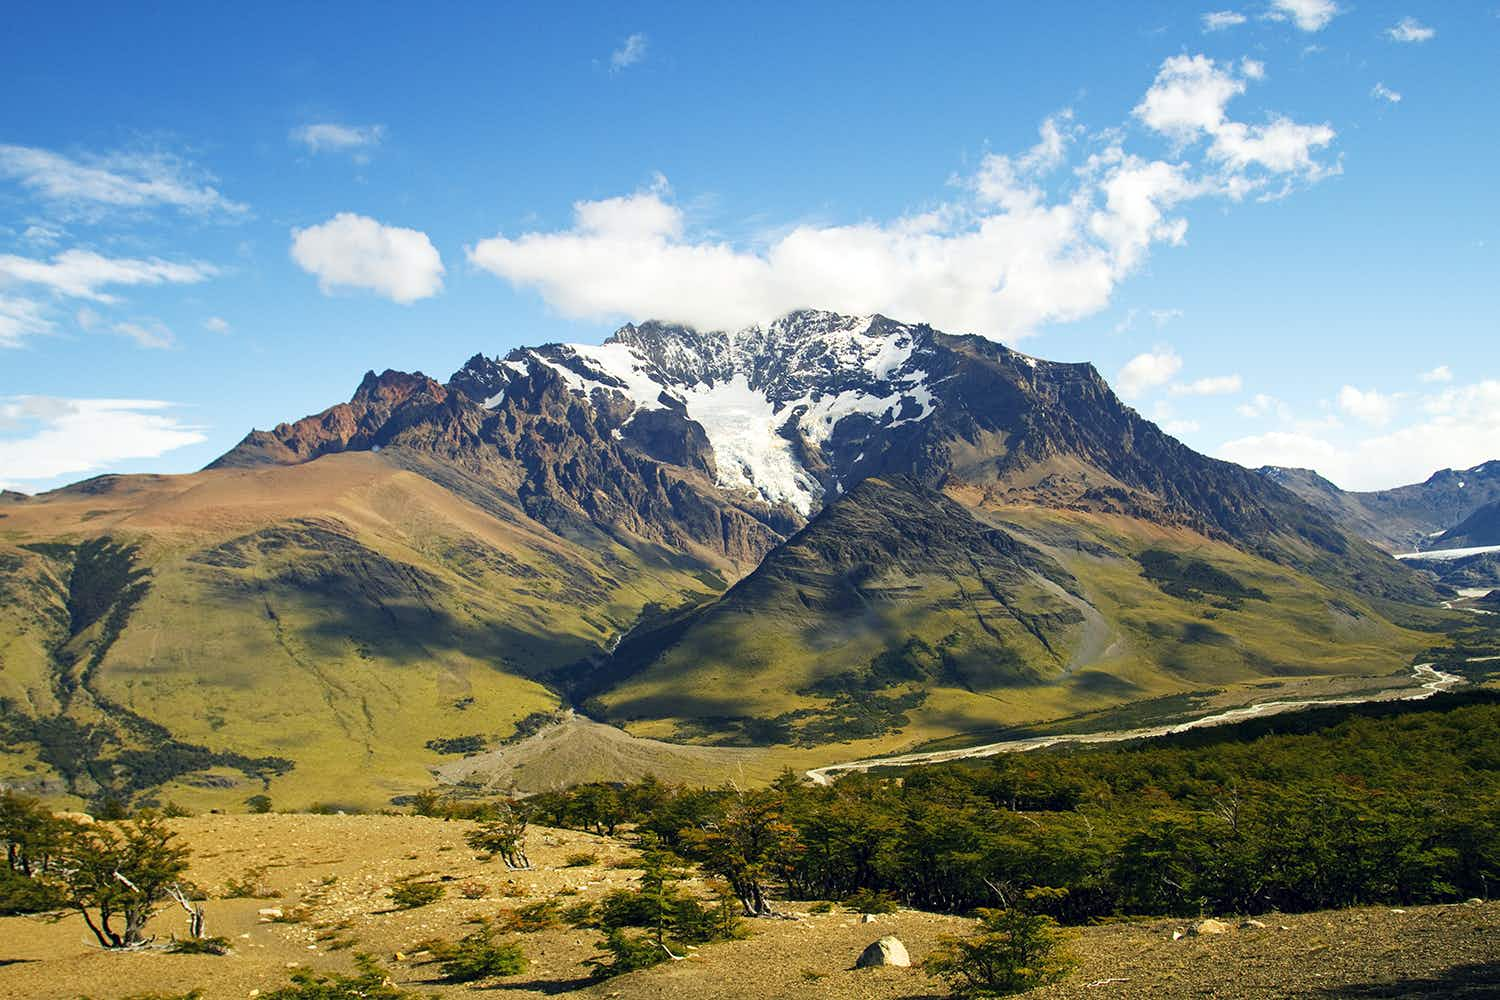 Highs on the Huemul circuit: Patagonia's lesser-known trek